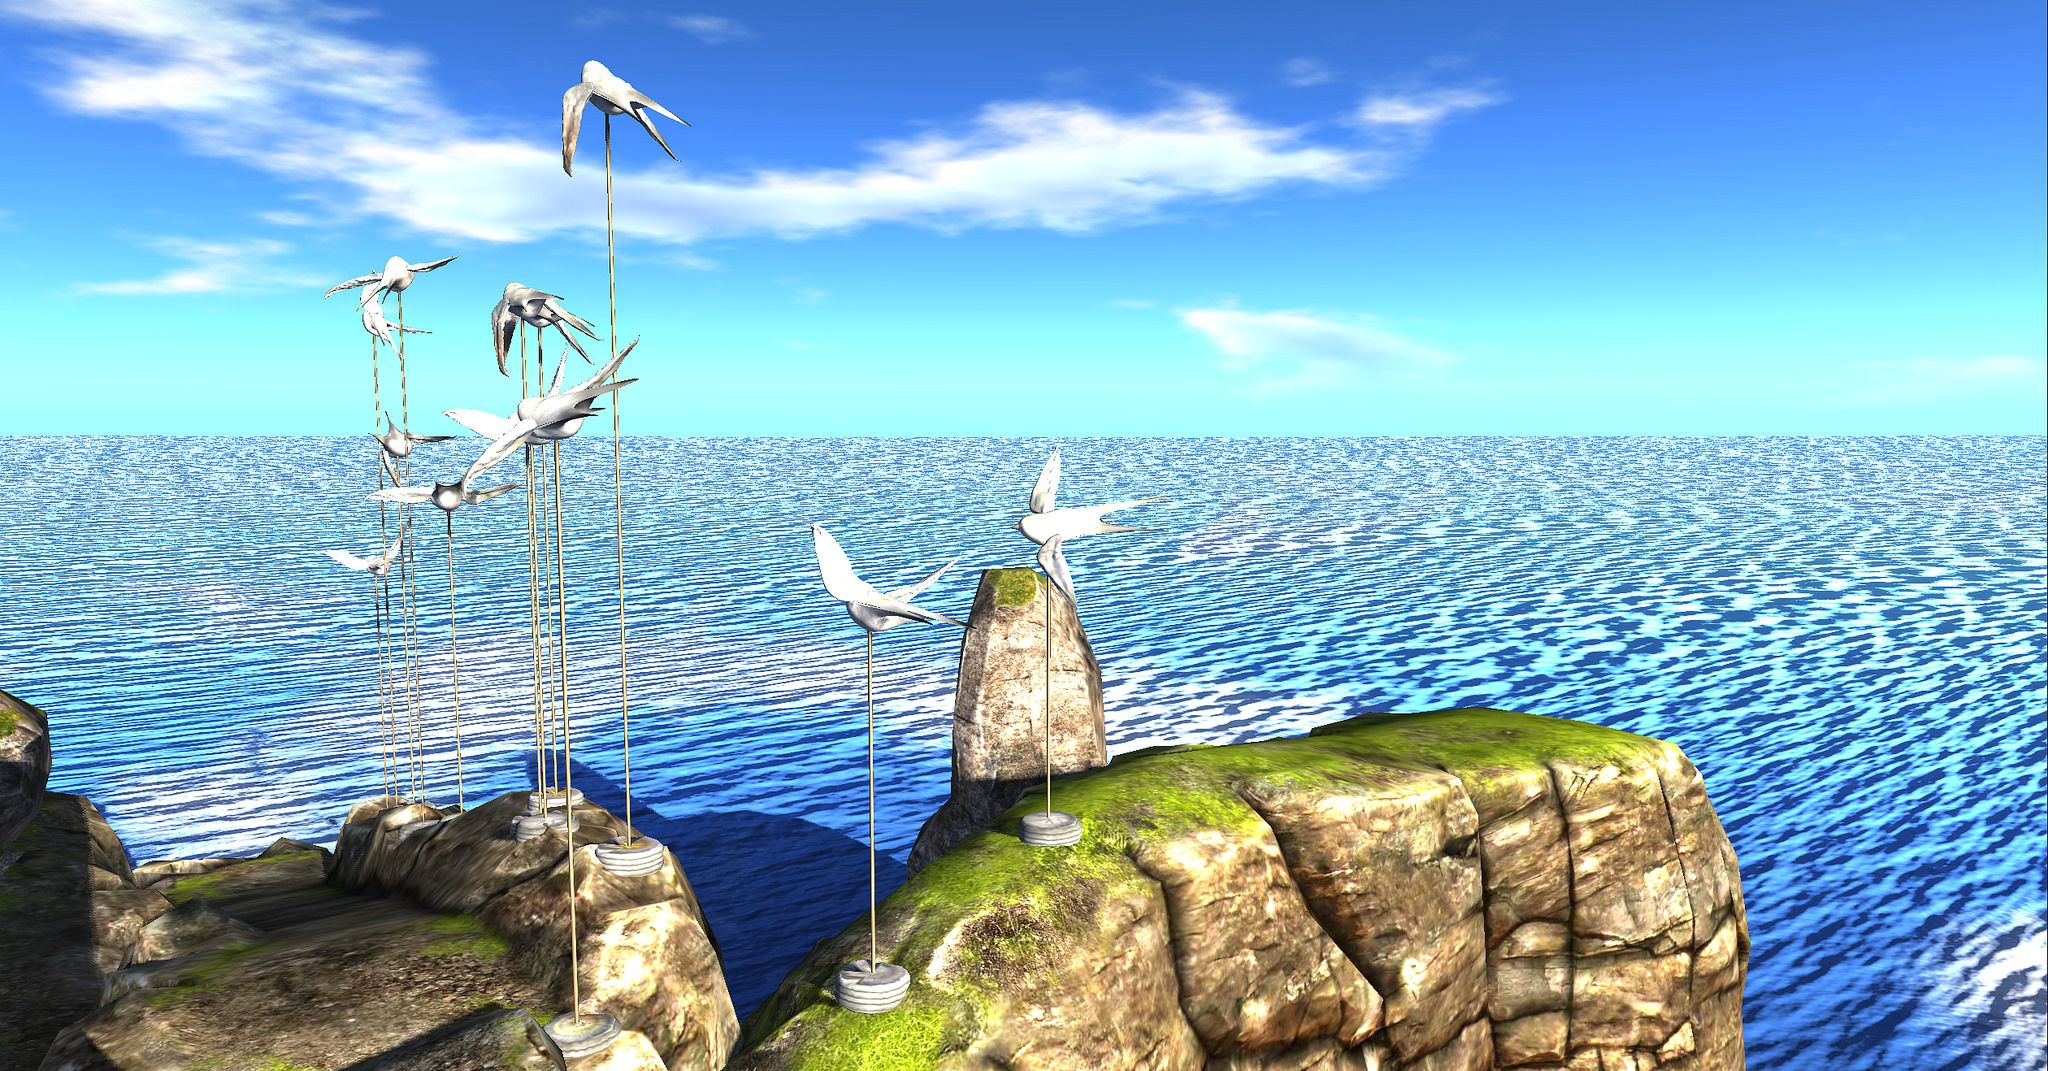 https://flic.kr/p/Fr9LXK   I like... birds   Binemust {A} maps.secondlife.com/secondlife/Binemust/54/109/21  Lyrics from a song, plus a family joke. ;-)  But truly, Bine's redesign  of the sim merits full exploration. Wonderful and whimsical!!